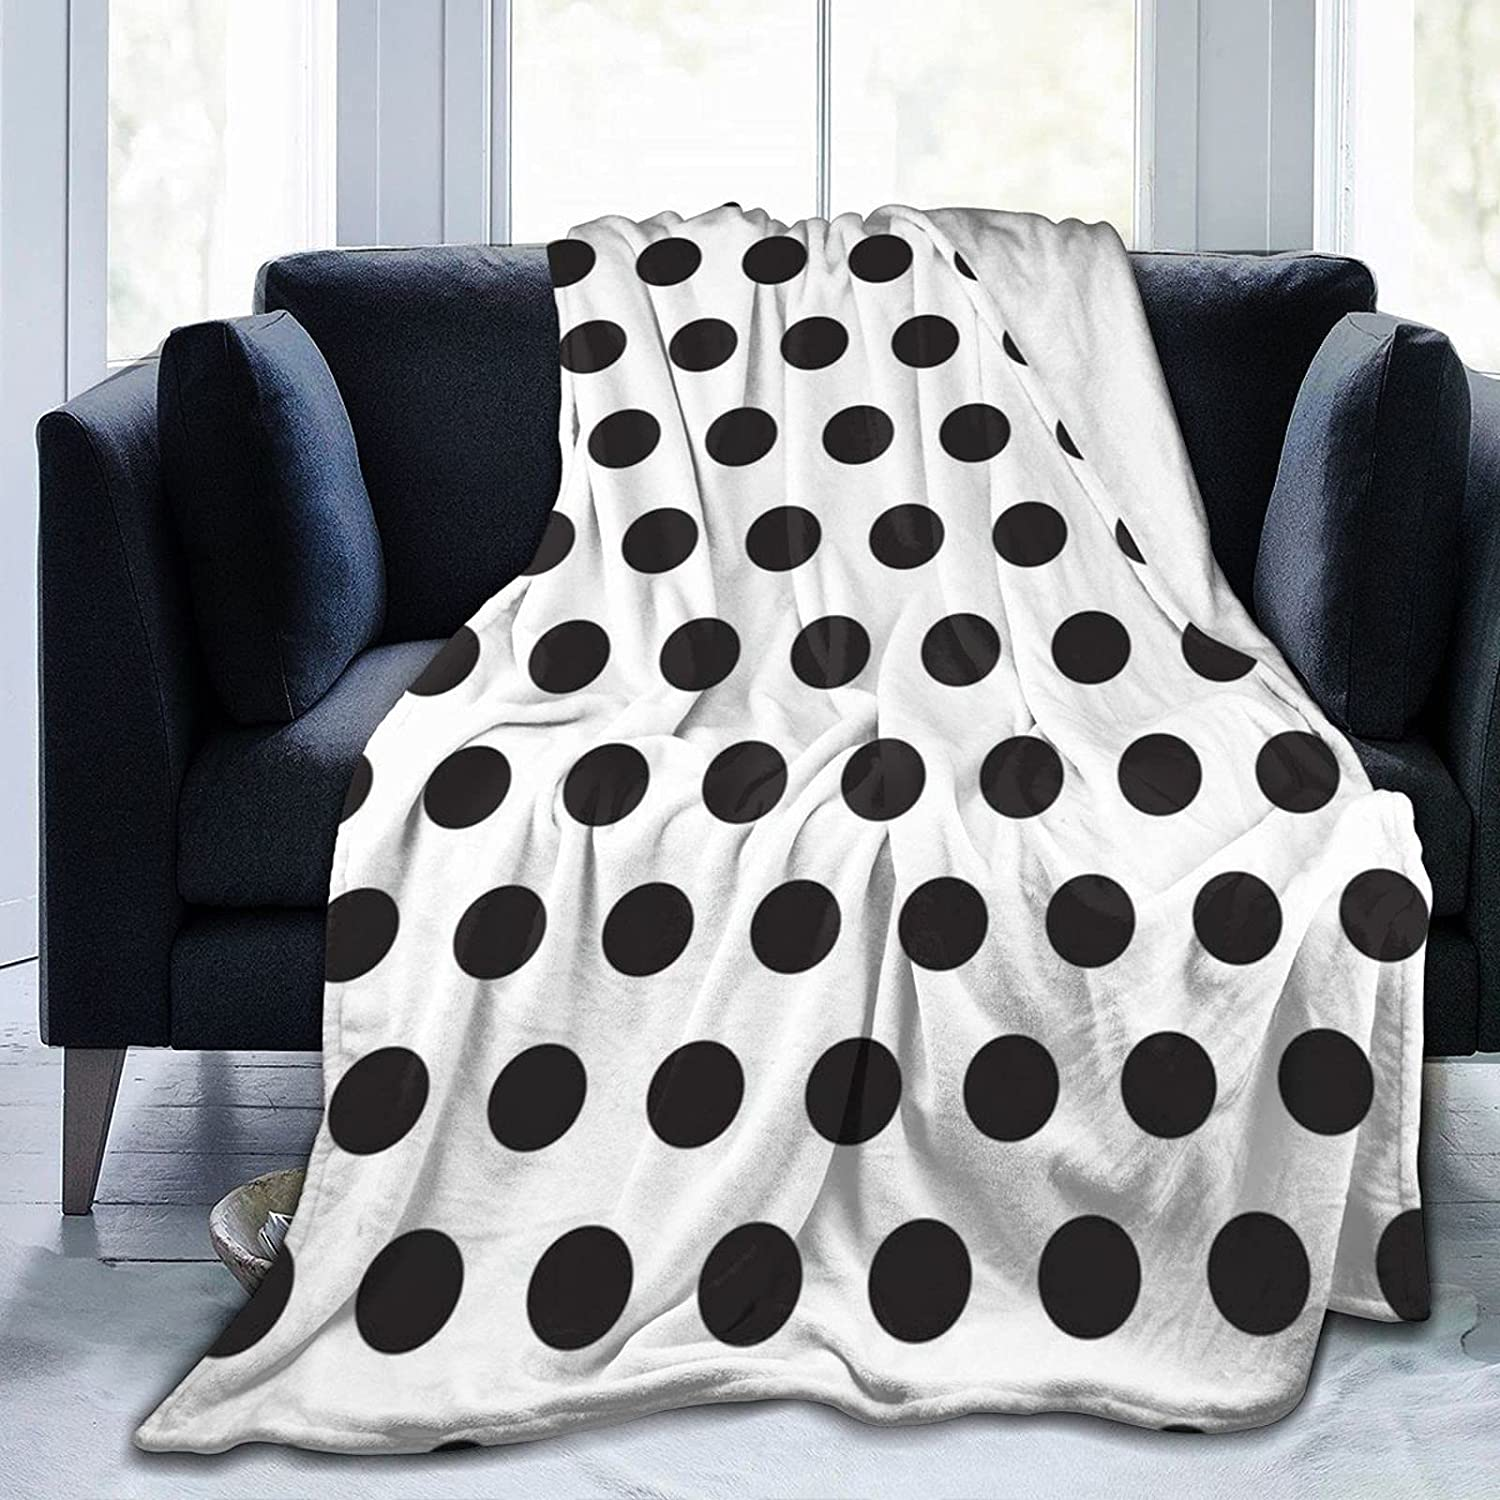 Bed Throws Black Polka Dot Luxu sold out Today's only Blankets Blanket Summer Cool